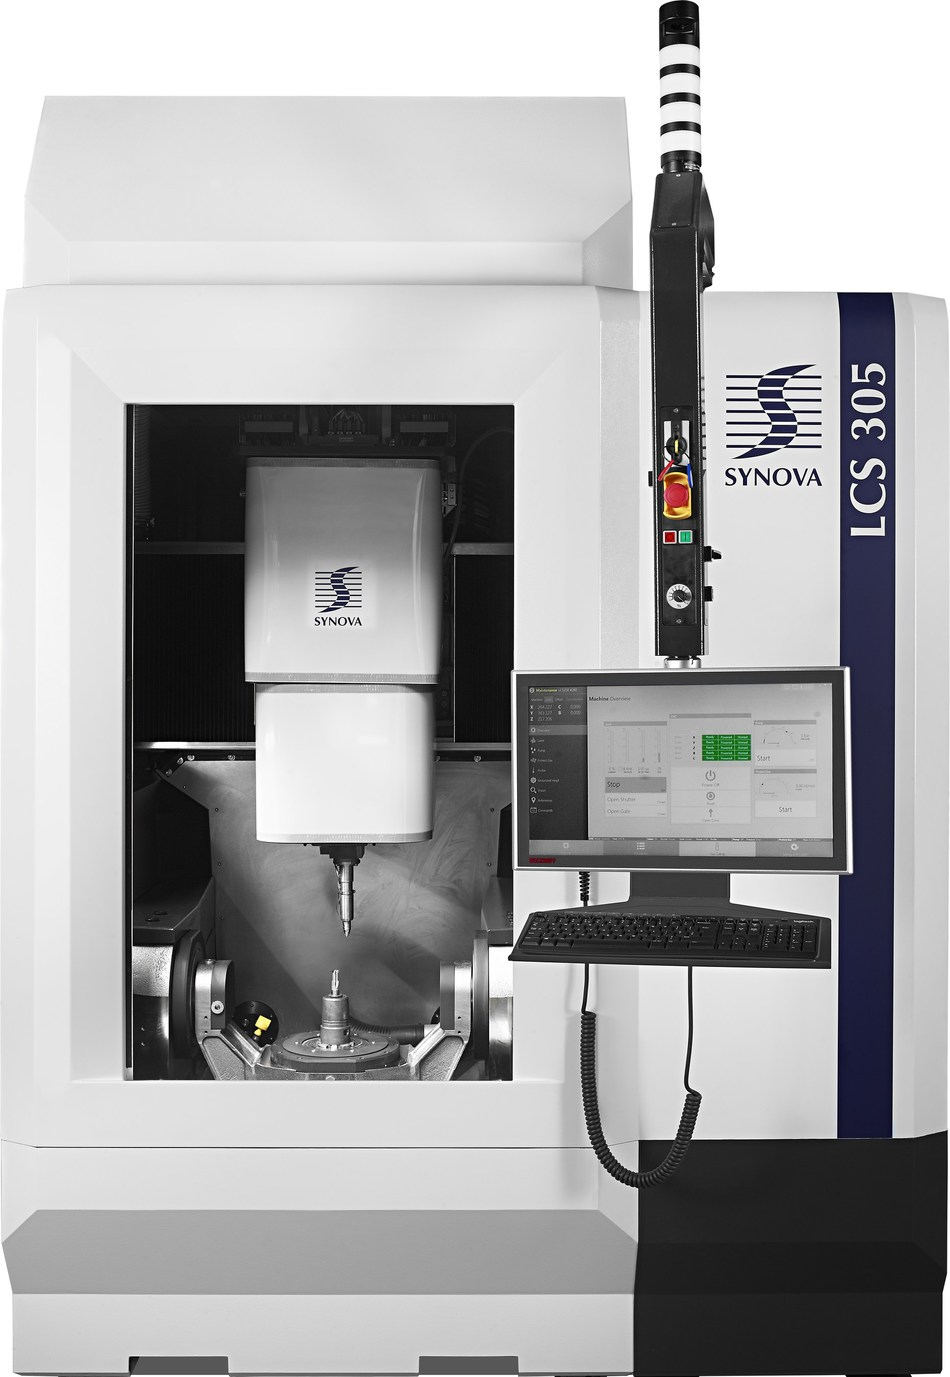 The new 5-axis laser machining center LCS 305 from Synova is designed to handle complex 3-D applications in tool and aerospace industries. The LCS 305 with Laser MicroJet® technology offers unmatched accuracy, quality and speed with highly dynamic axes, water-cooled linear and torque motors, mineral casting machine bed and fully automatic offset calibration system. (PRNewsfoto/Synova)